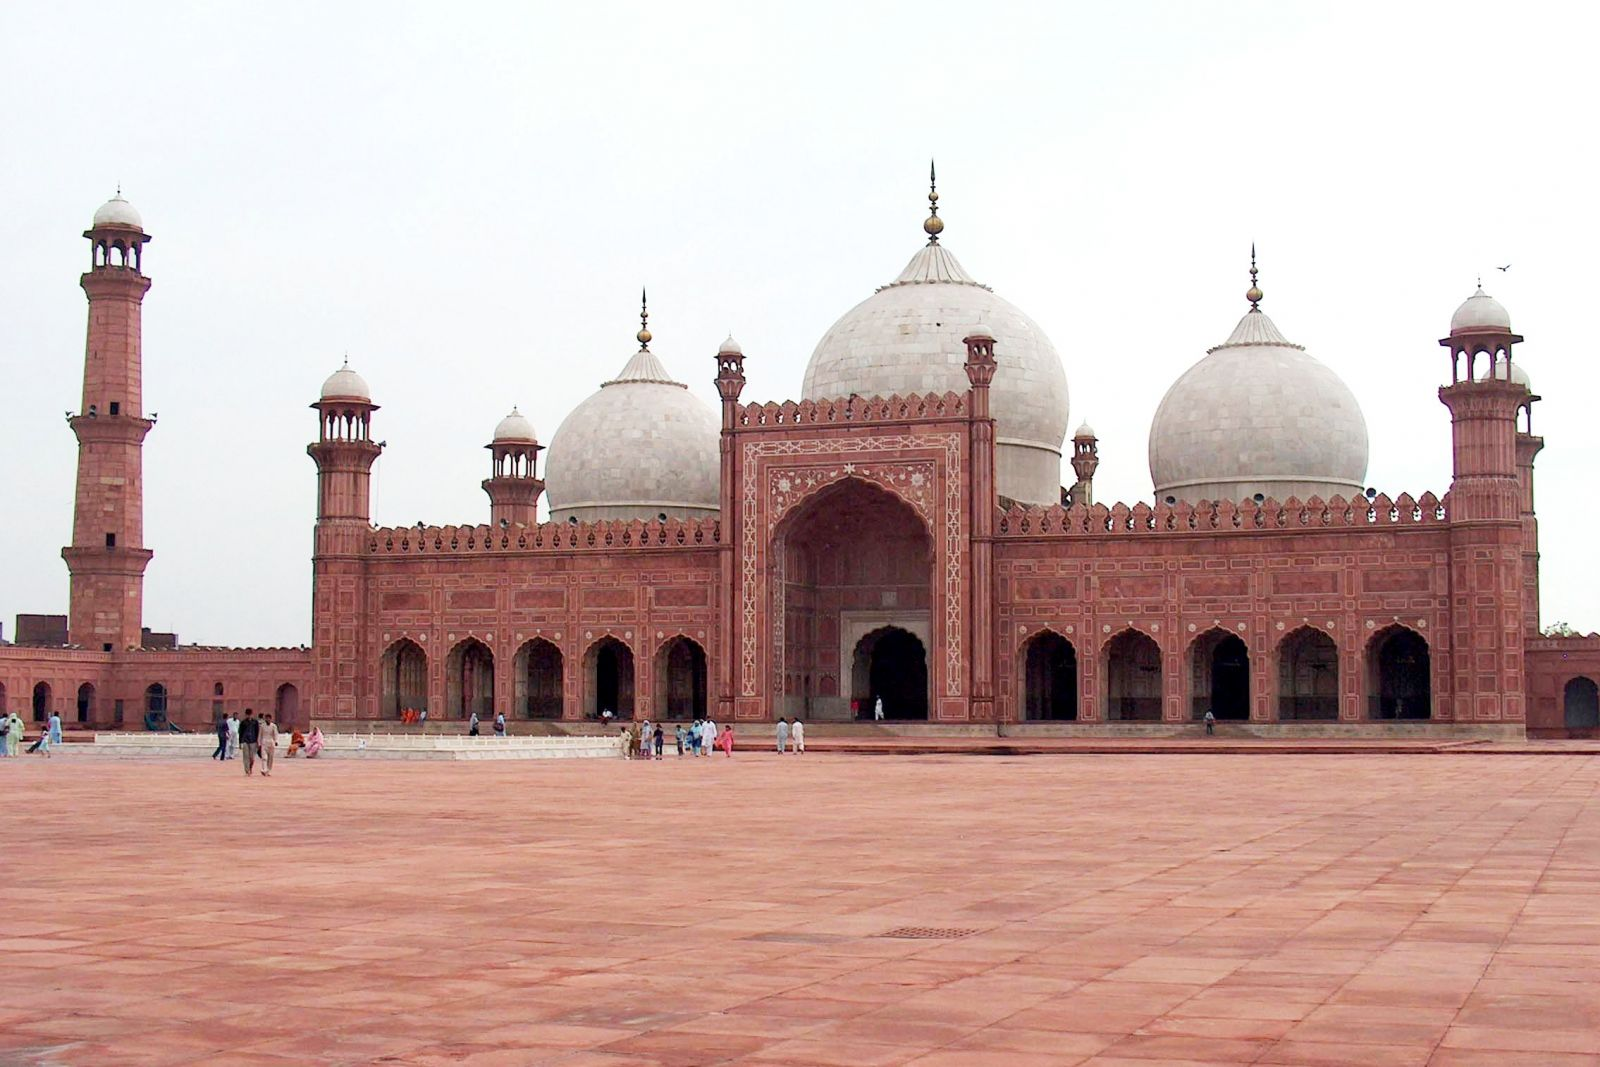 Badshahi_Mosque_July_1_2005_pic32_by_Ali_Imran_(1).jpg